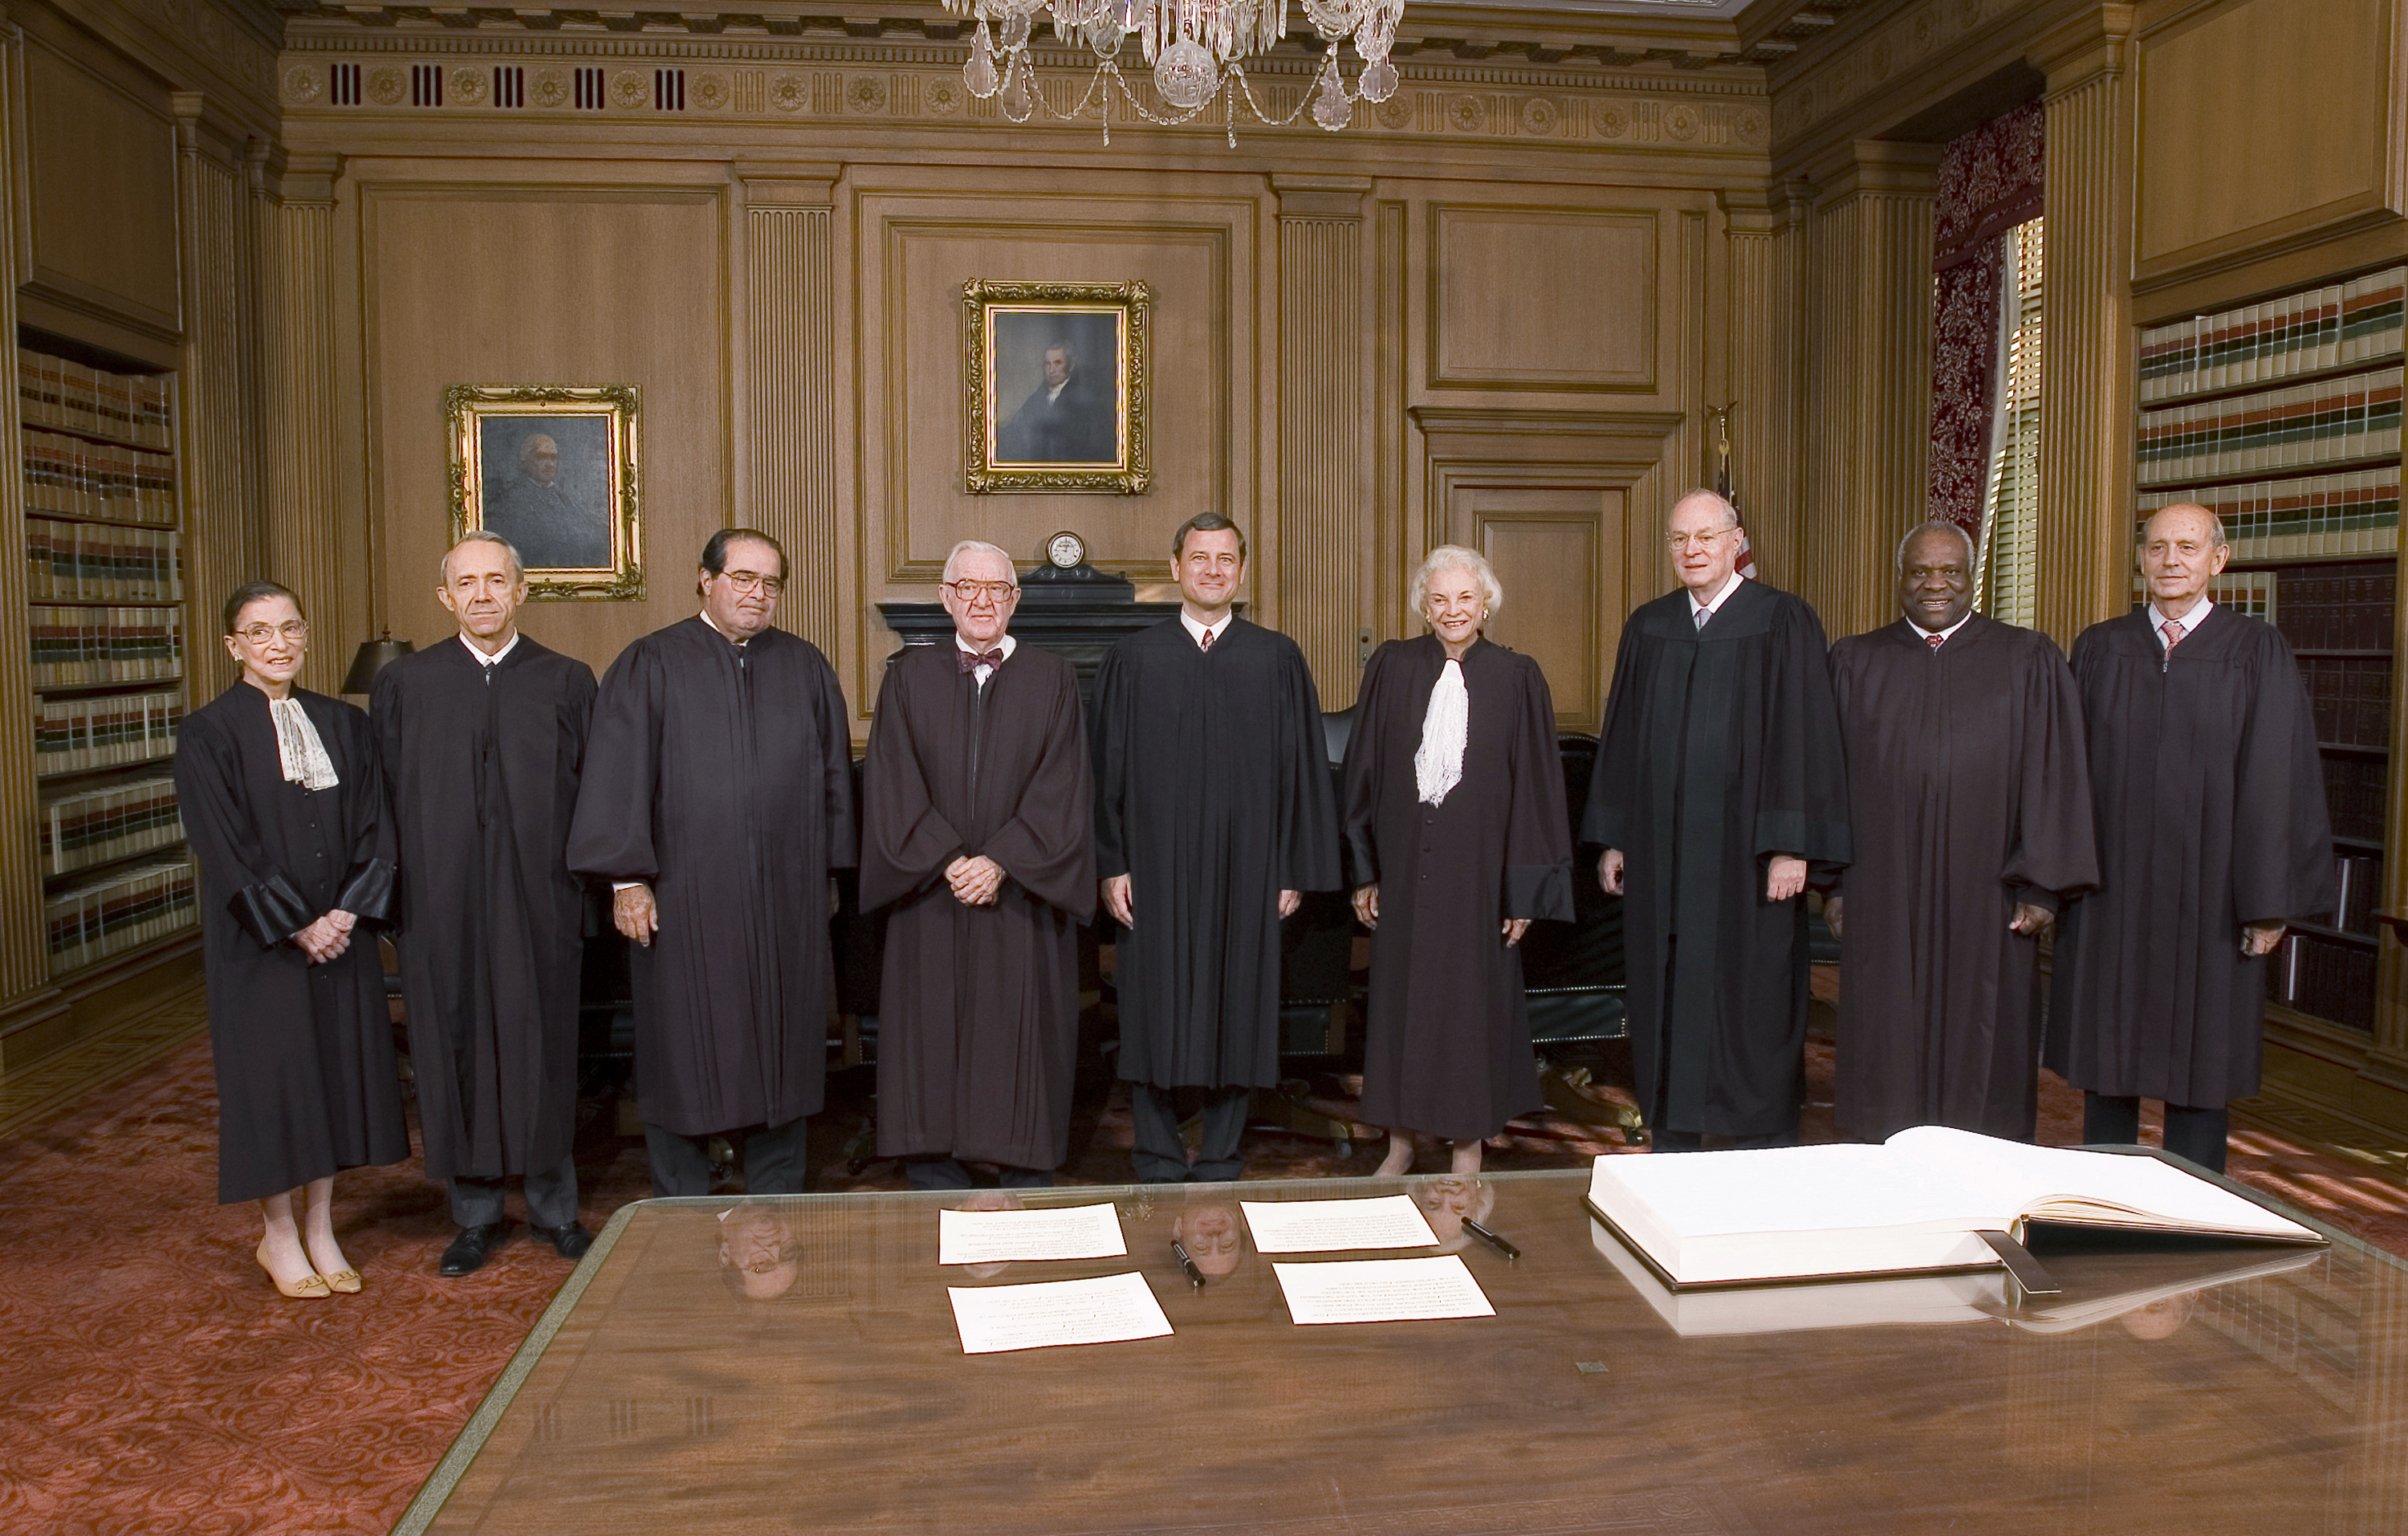 John Roberts (center) with the rest of the court after becoming chief justice on Oct. 3, 2005. The other justices pictured are Ginsburg (from left), David Souter, Antonin Scalia, John Paul Stevens, Roberts, Sandra Day O'Connor, Anthony Kennedy, Clarence Thomas and Stephen Breyer.